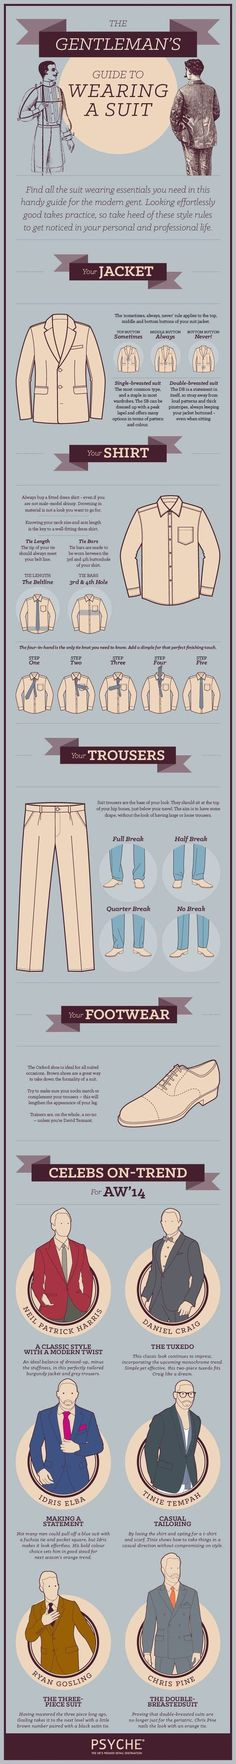 This suit style guide shows you how to wear a jacket, how to fold a pocket square, how to choose the right shirt and trousers for their build, and picking the perfect pair of shoes to match their outfit.